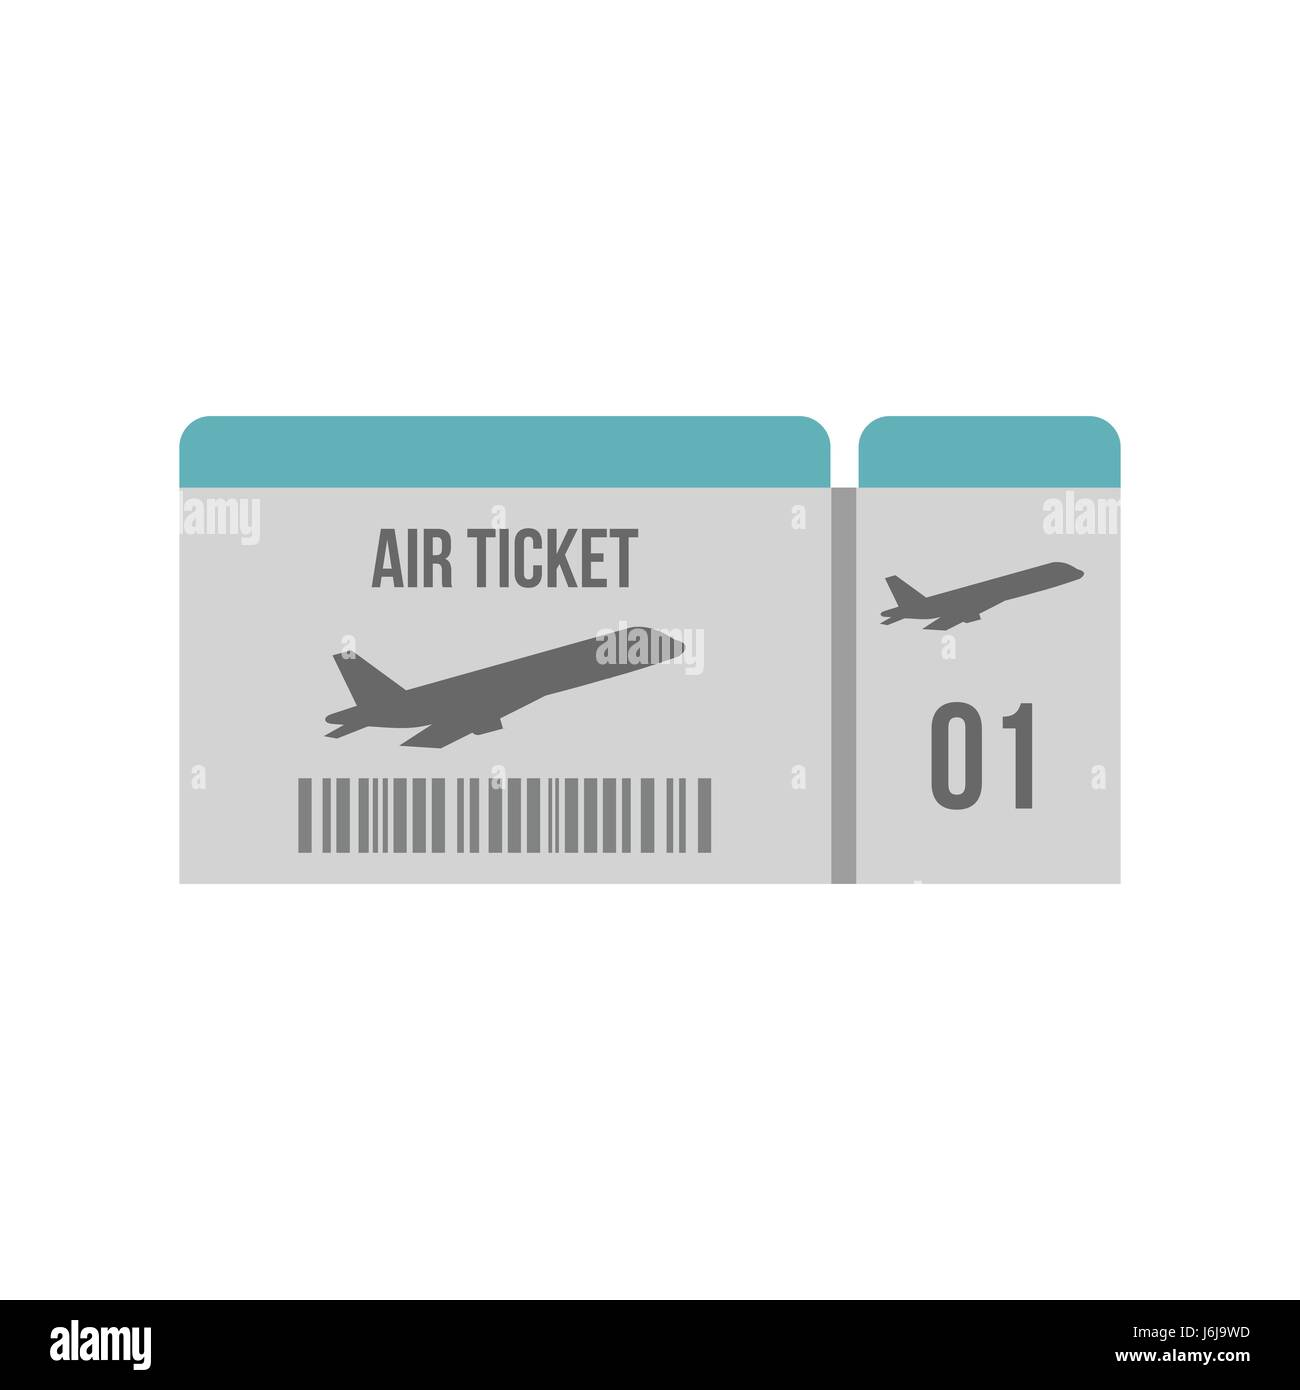 Air ticket icon, flat style - Stock Image